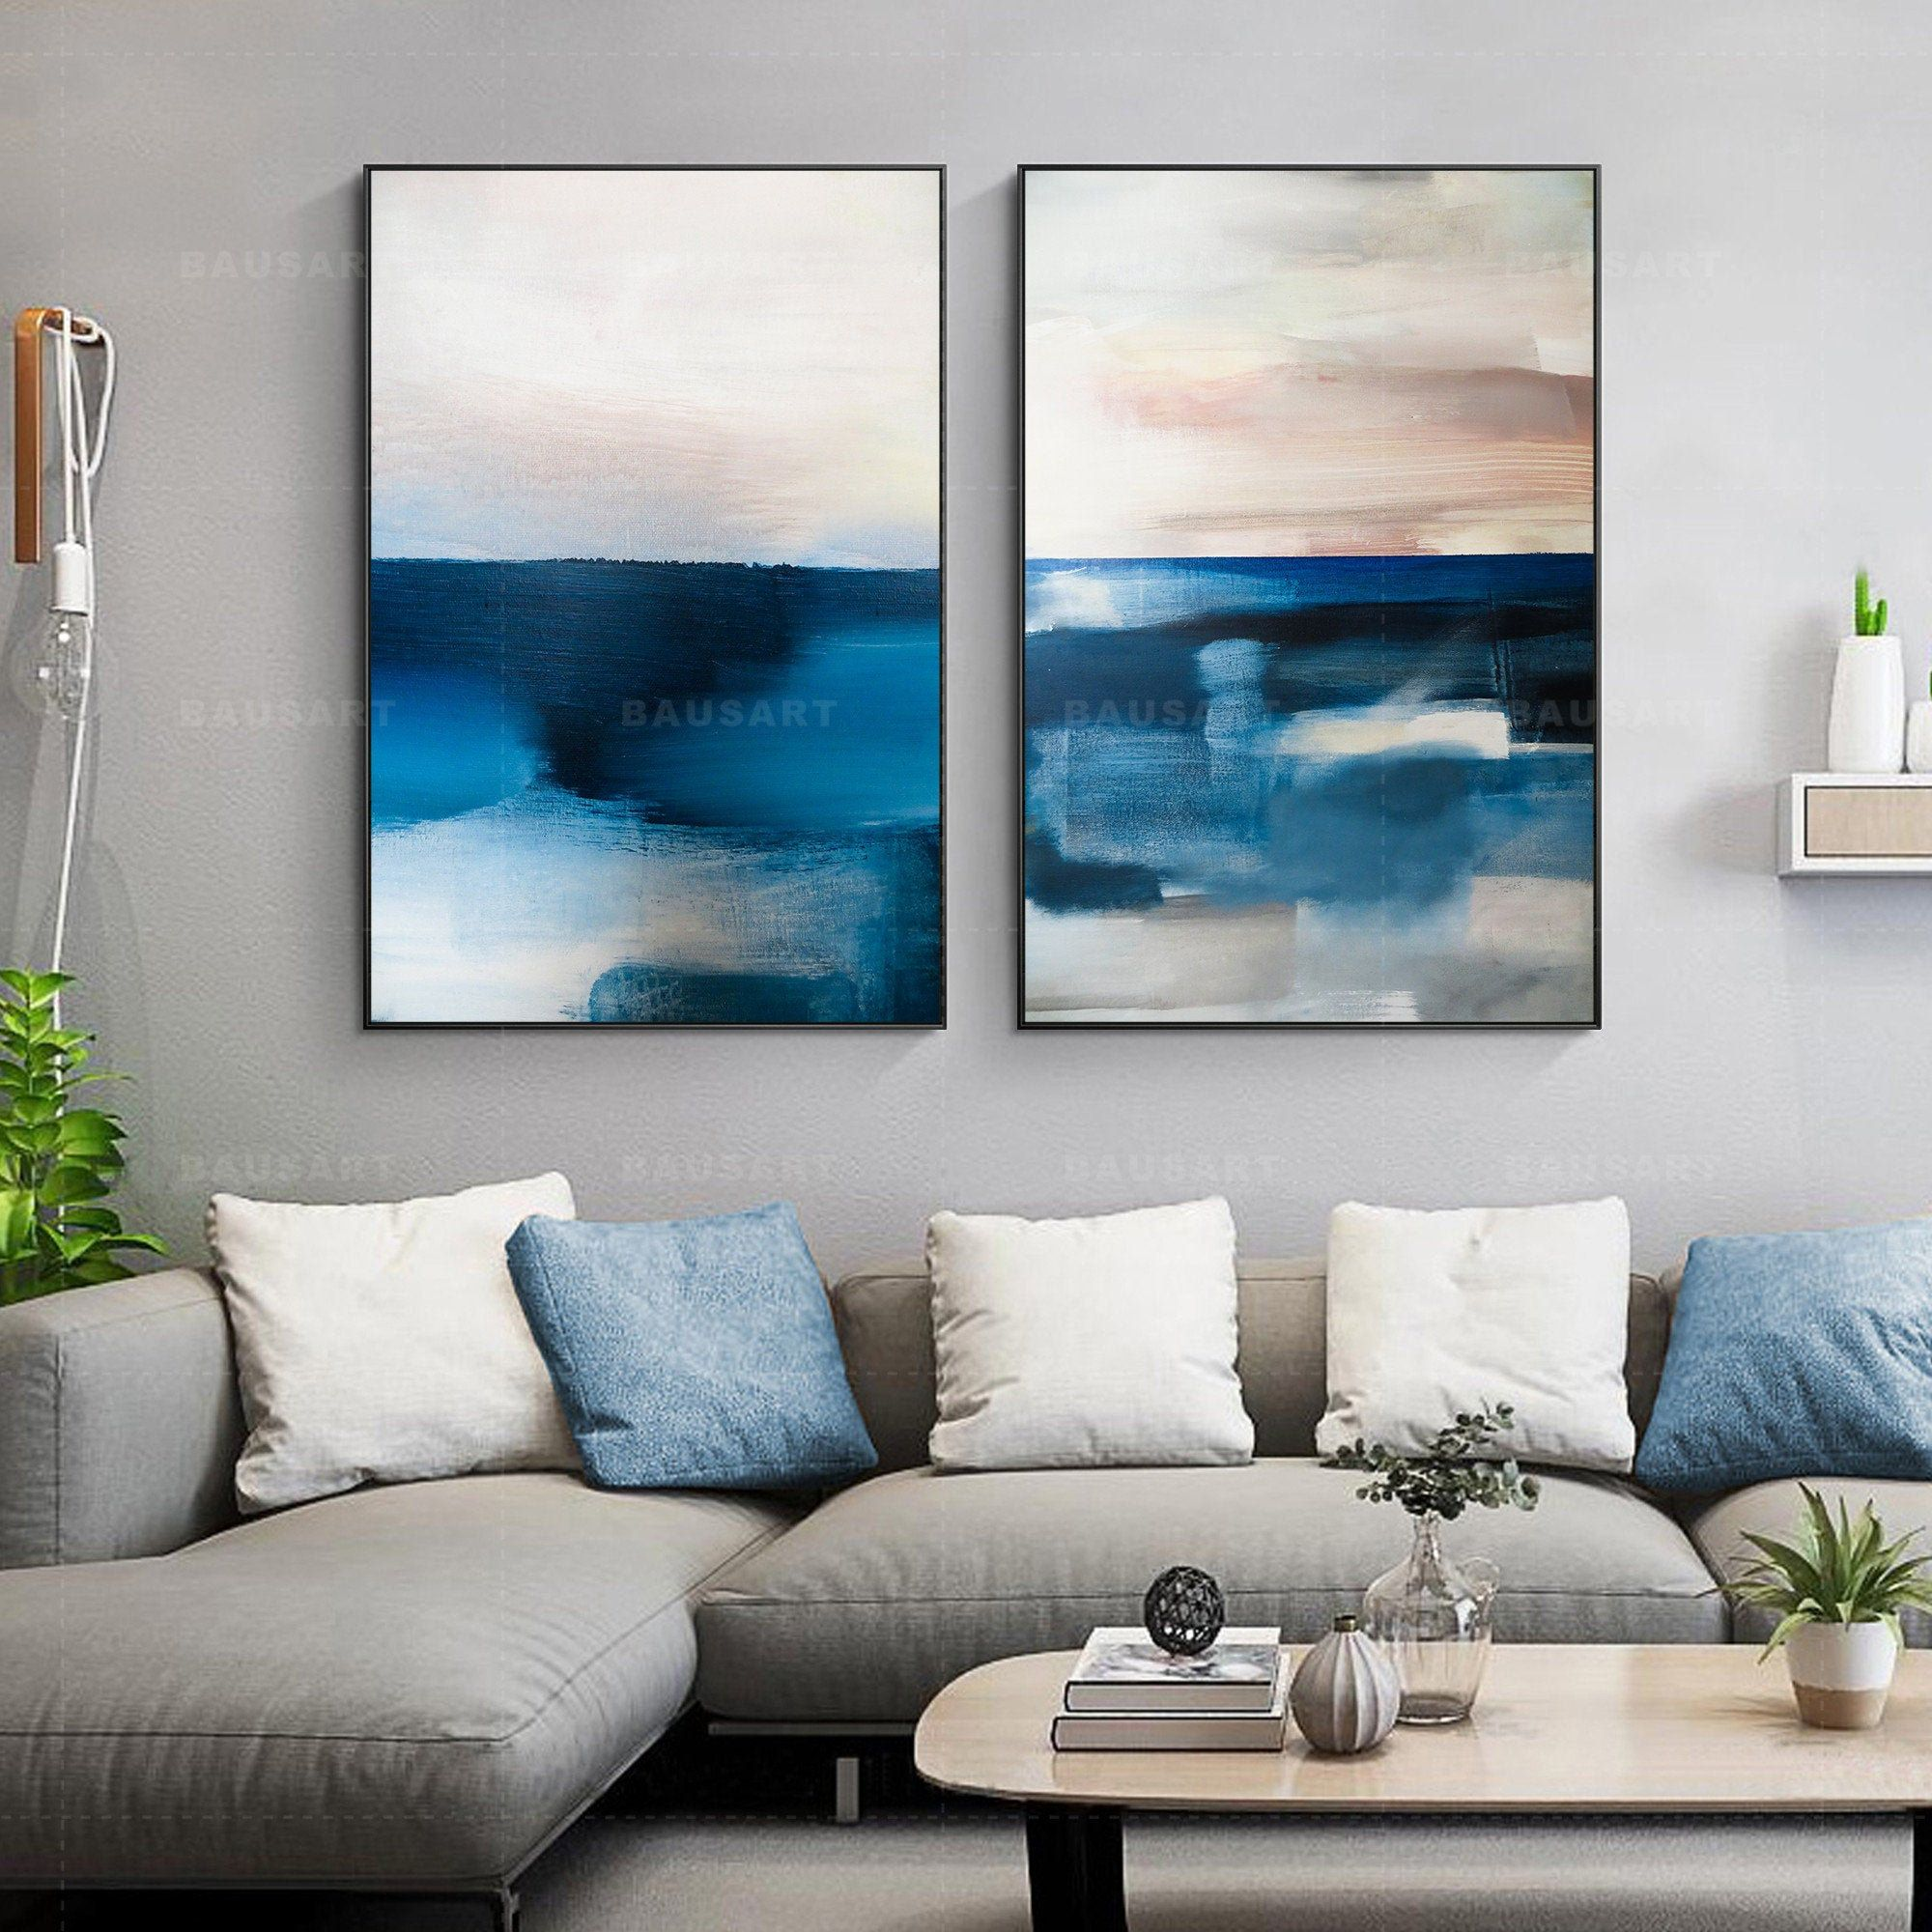 Framed Wall Art Set Of 2 Prints Abstract Blue Print Painting On Canvas Large Landscape Wall Art Frame Pr Framed Wall Art Sets Frames On Wall Landscape Wall Art